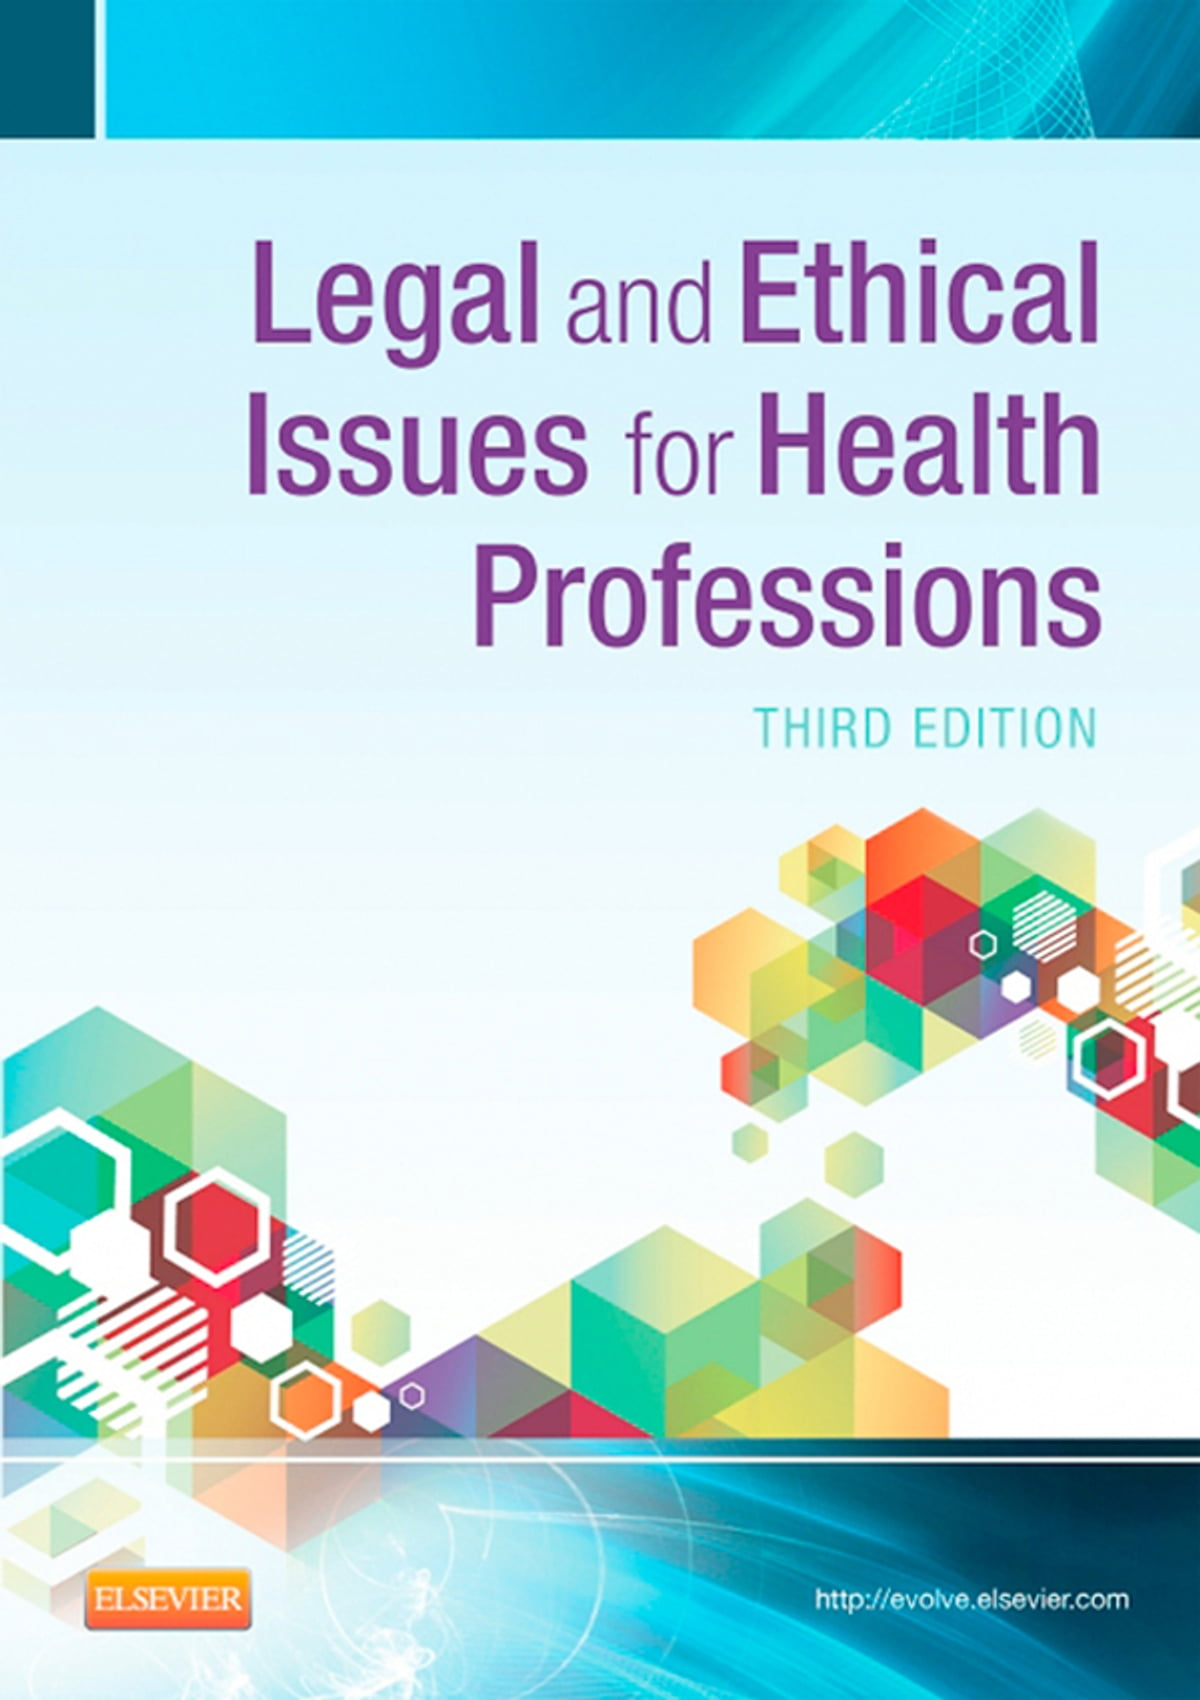 Legal and Ethical Issues for Health Professions eBook by Elsevier -  9780323291743 | Rakuten Kobo